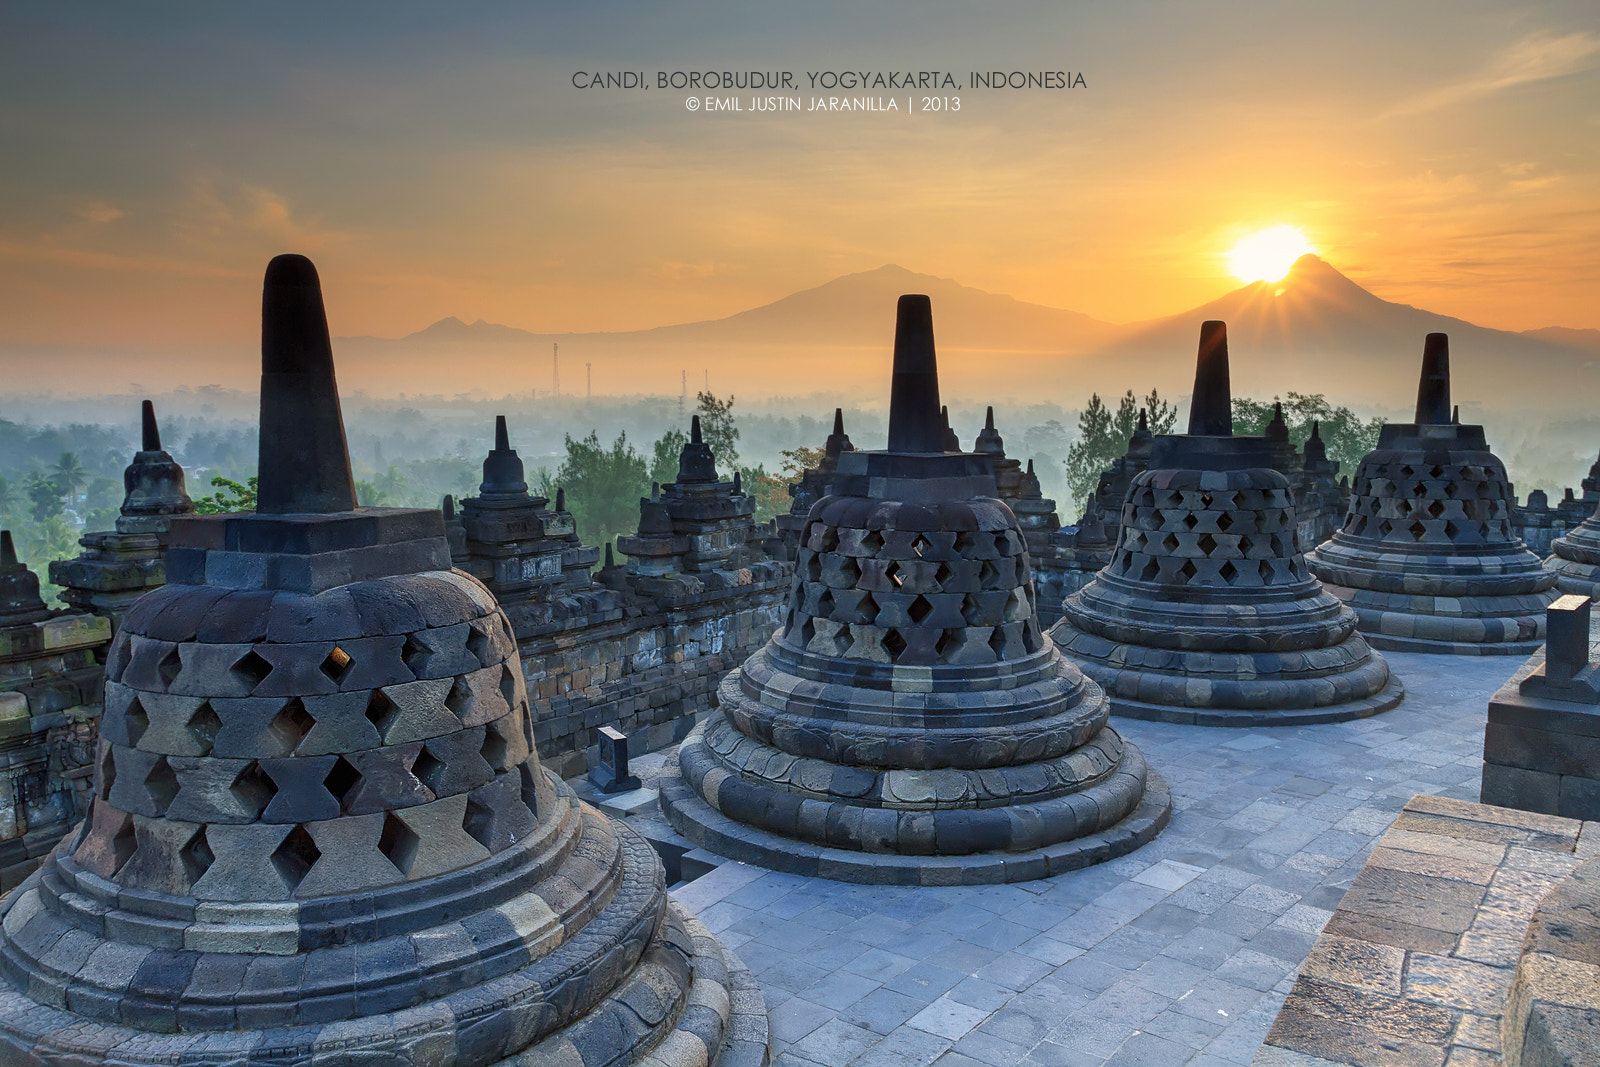 Photograph Candi Borobudur by Emil Justin Jaranilla on 500px